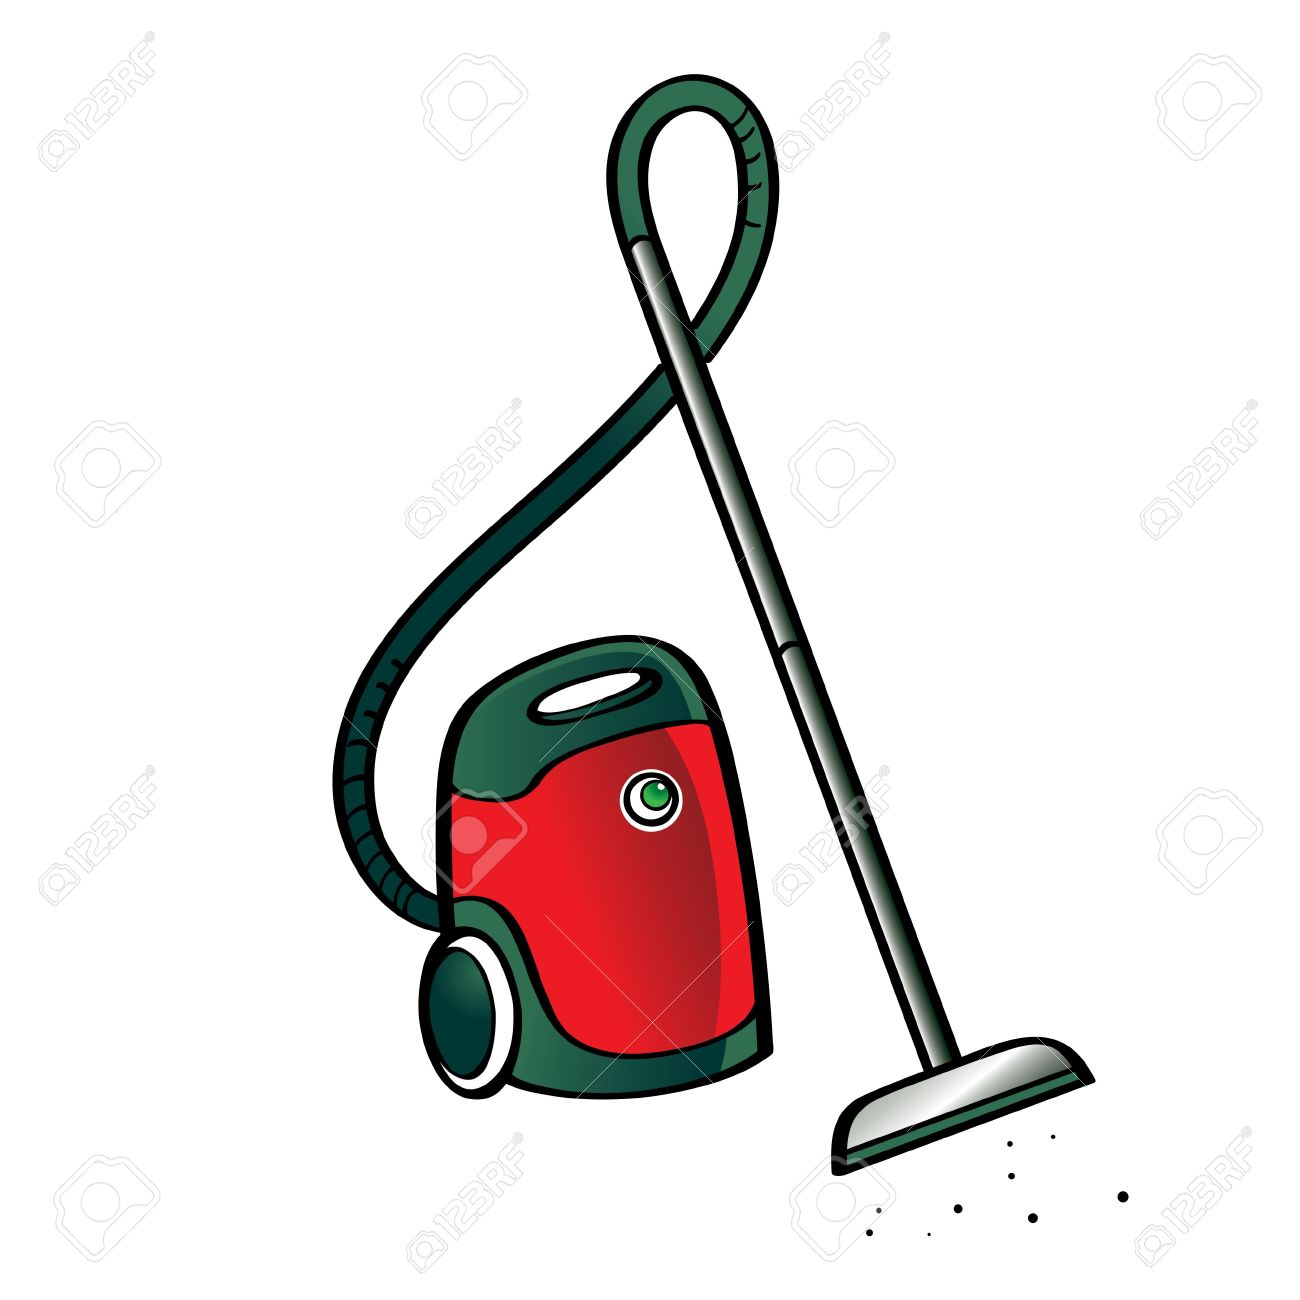 Cartoon vacuum cleaner clipart image freeuse stock Cartoon Vacuum Cleaner Clipart | Free download best Cartoon Vacuum ... image freeuse stock